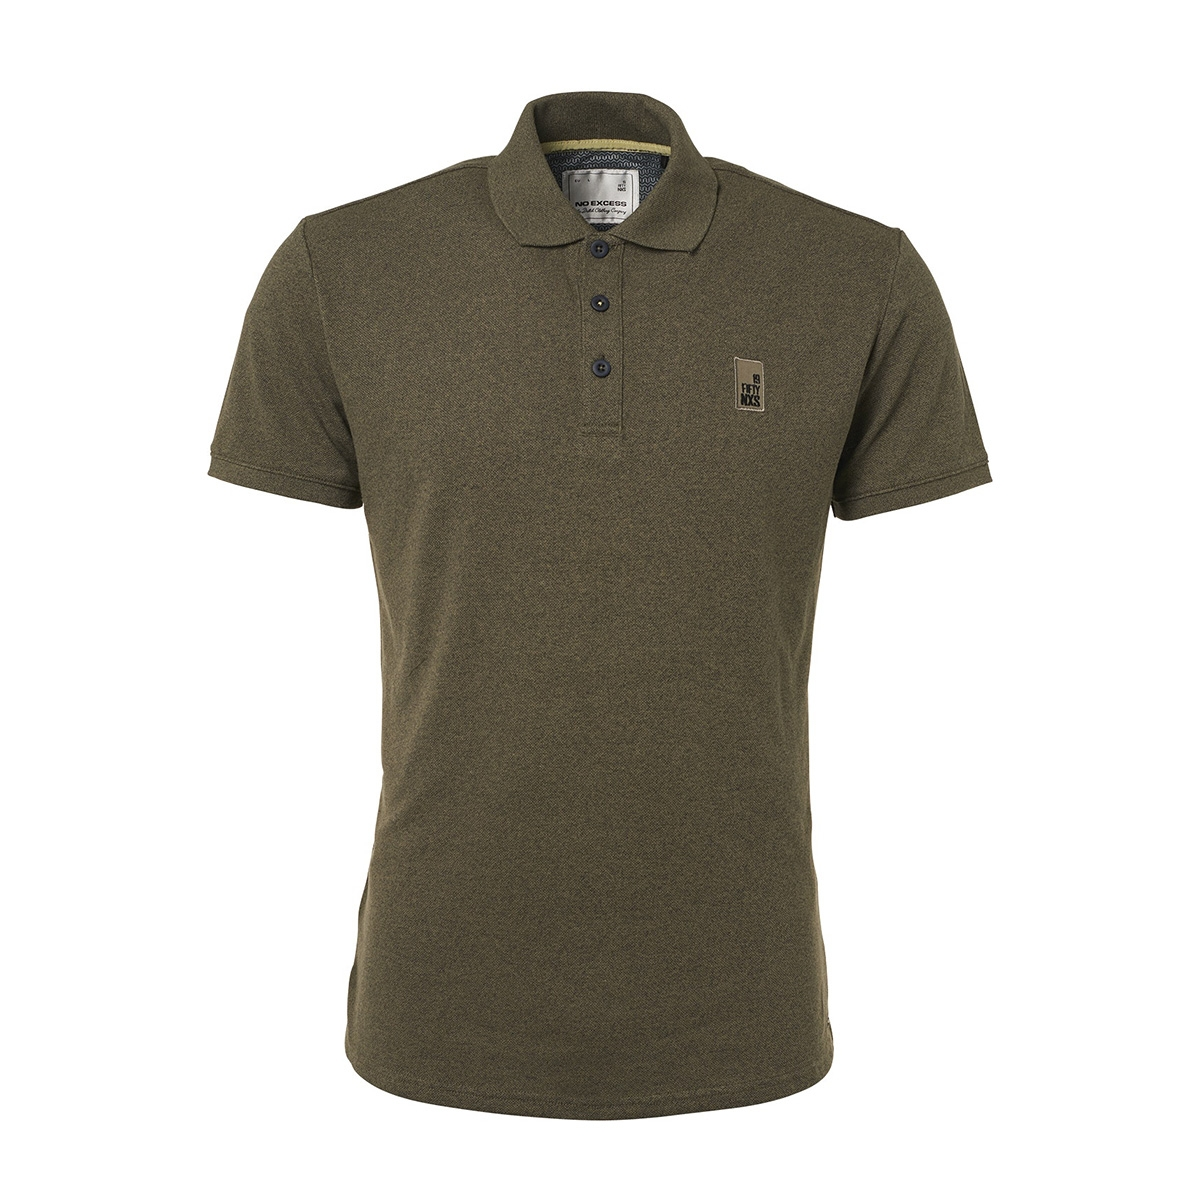 91370401 no-excess polo 055 olive